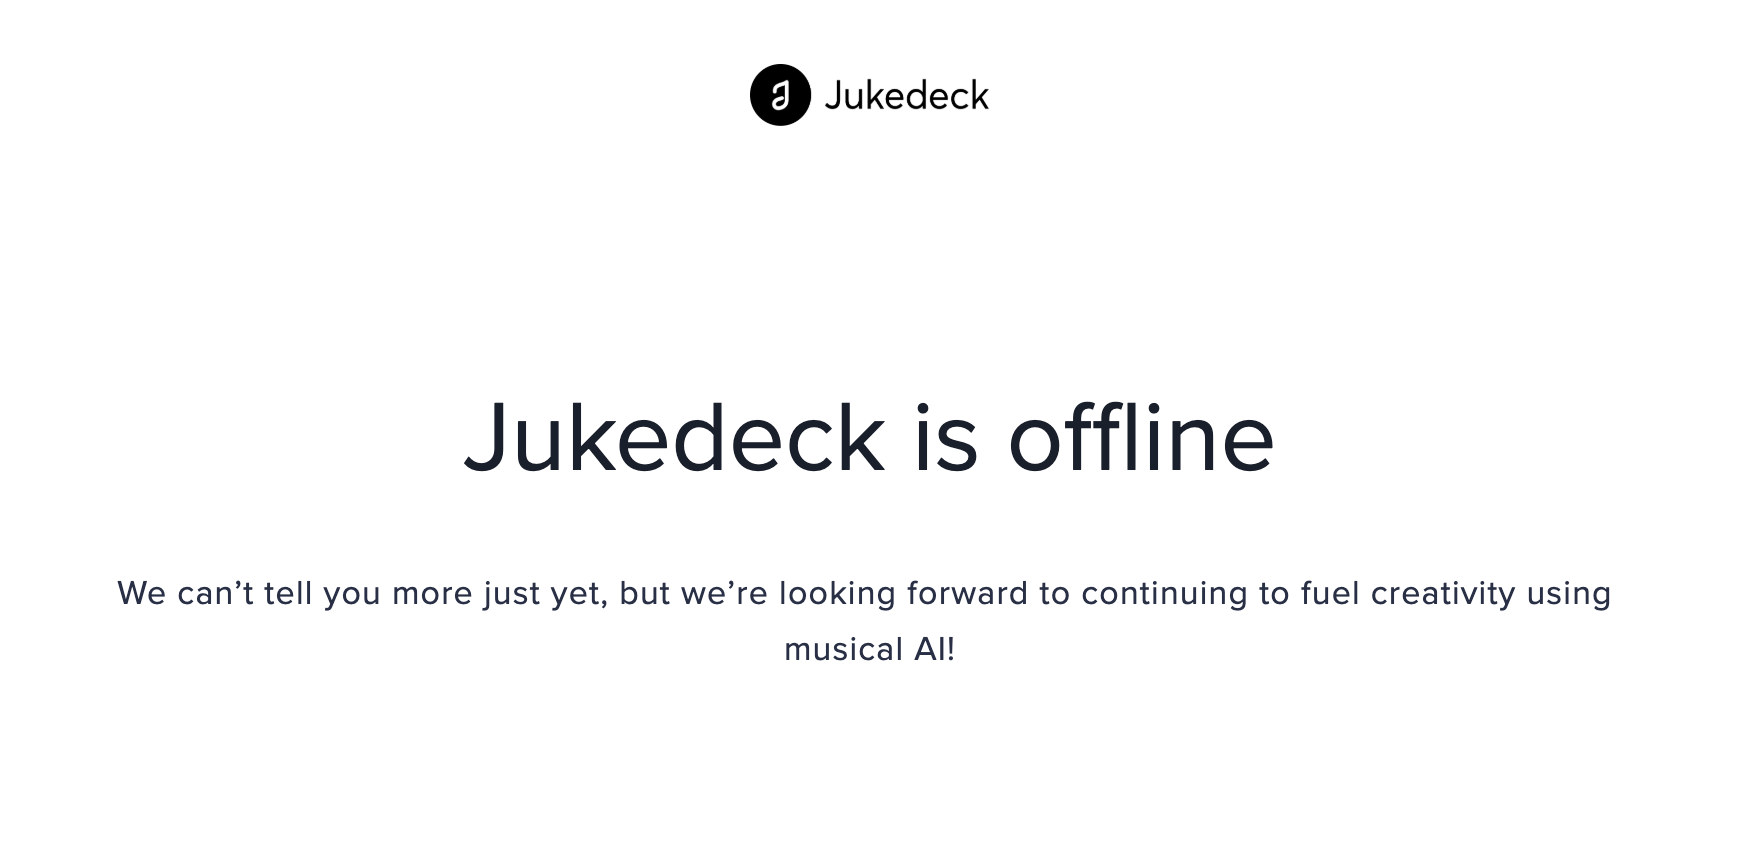 AI-music firm Jukedeck's CEO now runs AI Lab of TikTok owner